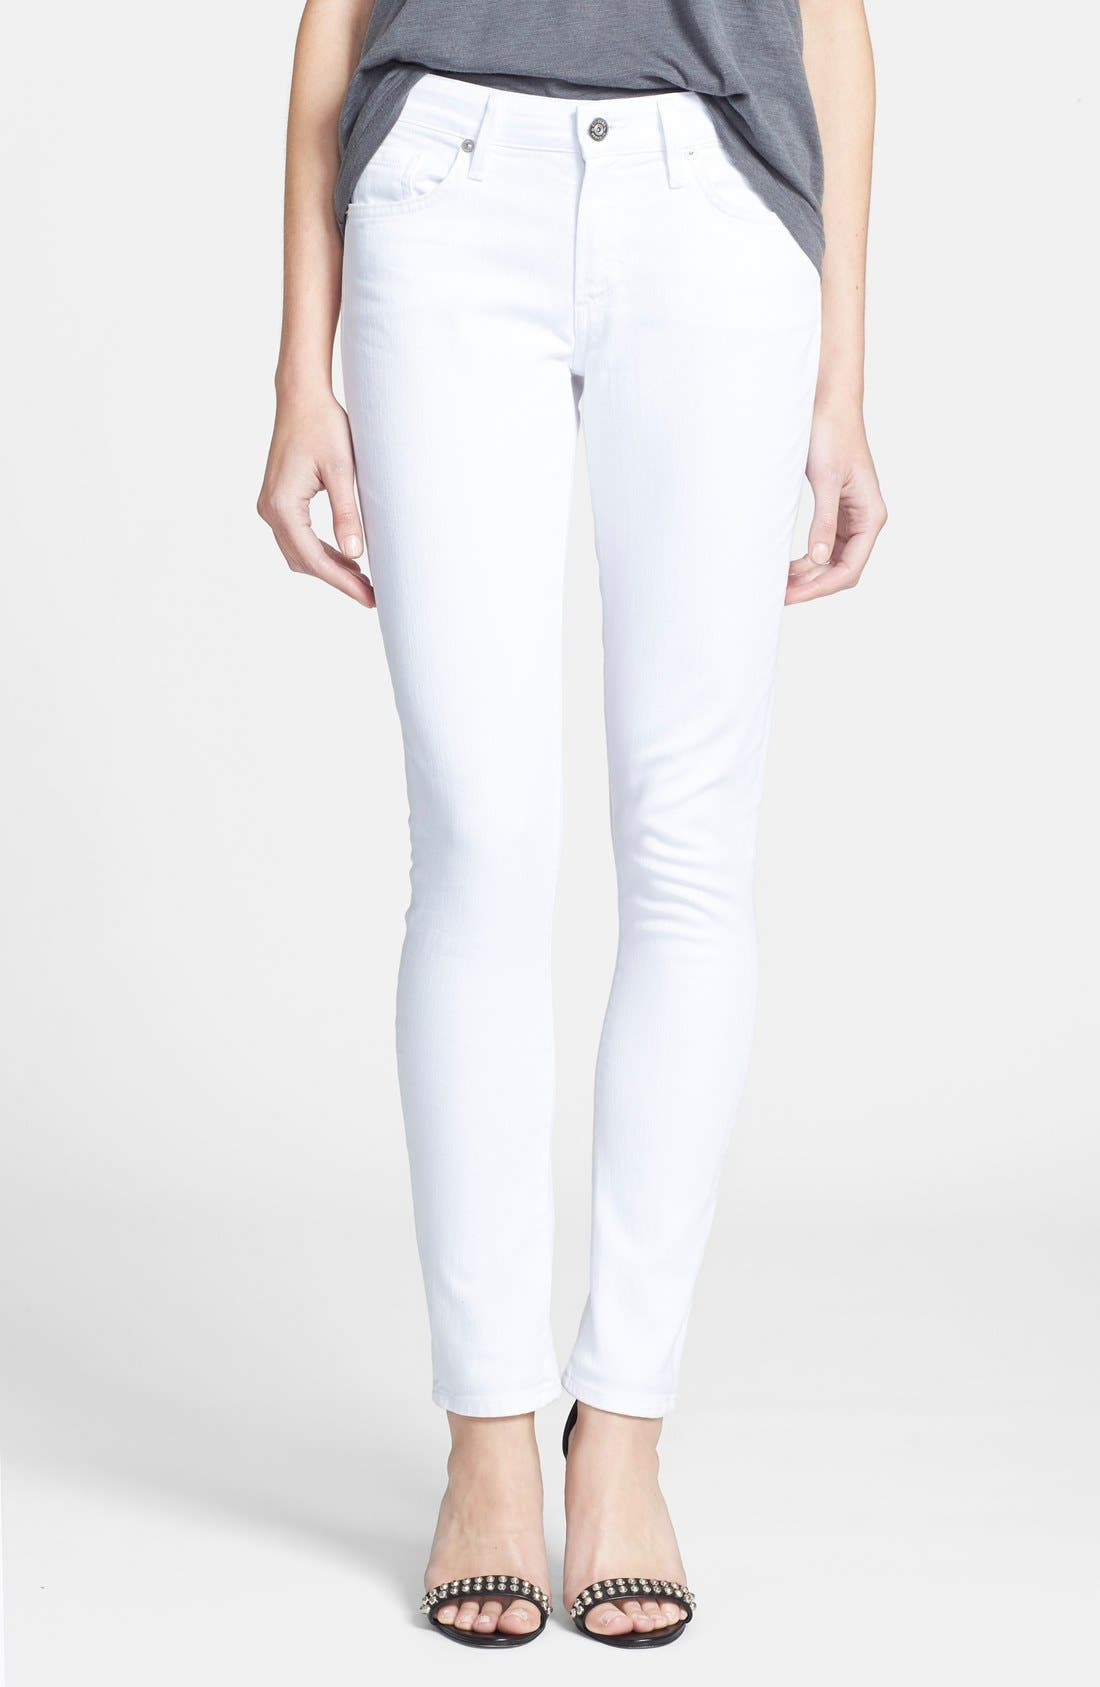 Alternate Image 1 Selected - Citizens of Humanity 'Arielle' Skinny Jeans (Santorini)